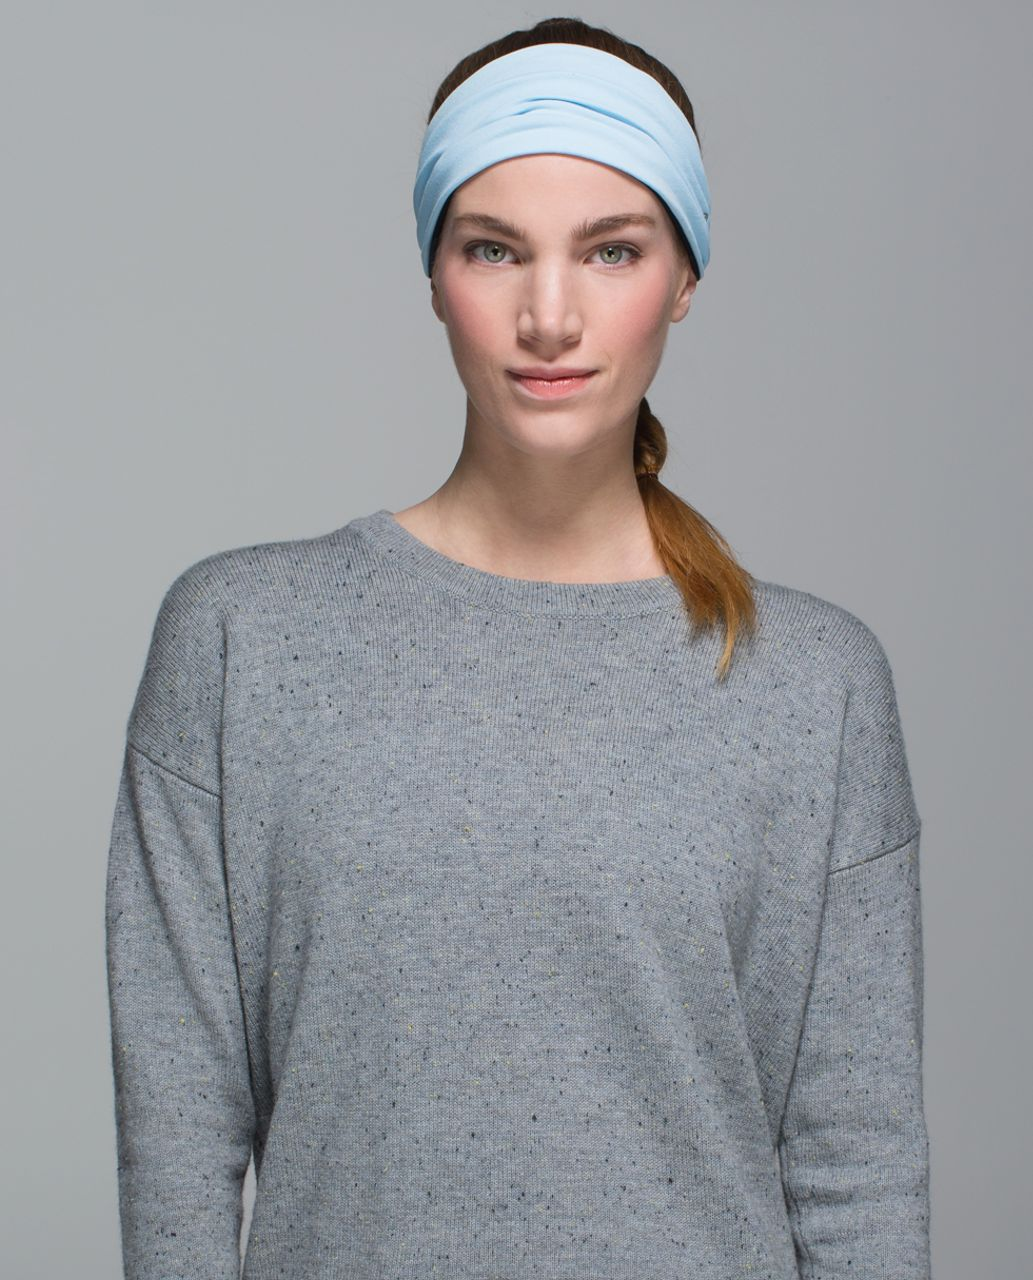 Lululemon Bang Buster Headband *Reversible - Heathered Texture Lotus Camo Oil Slick Blue / Caspian Blue